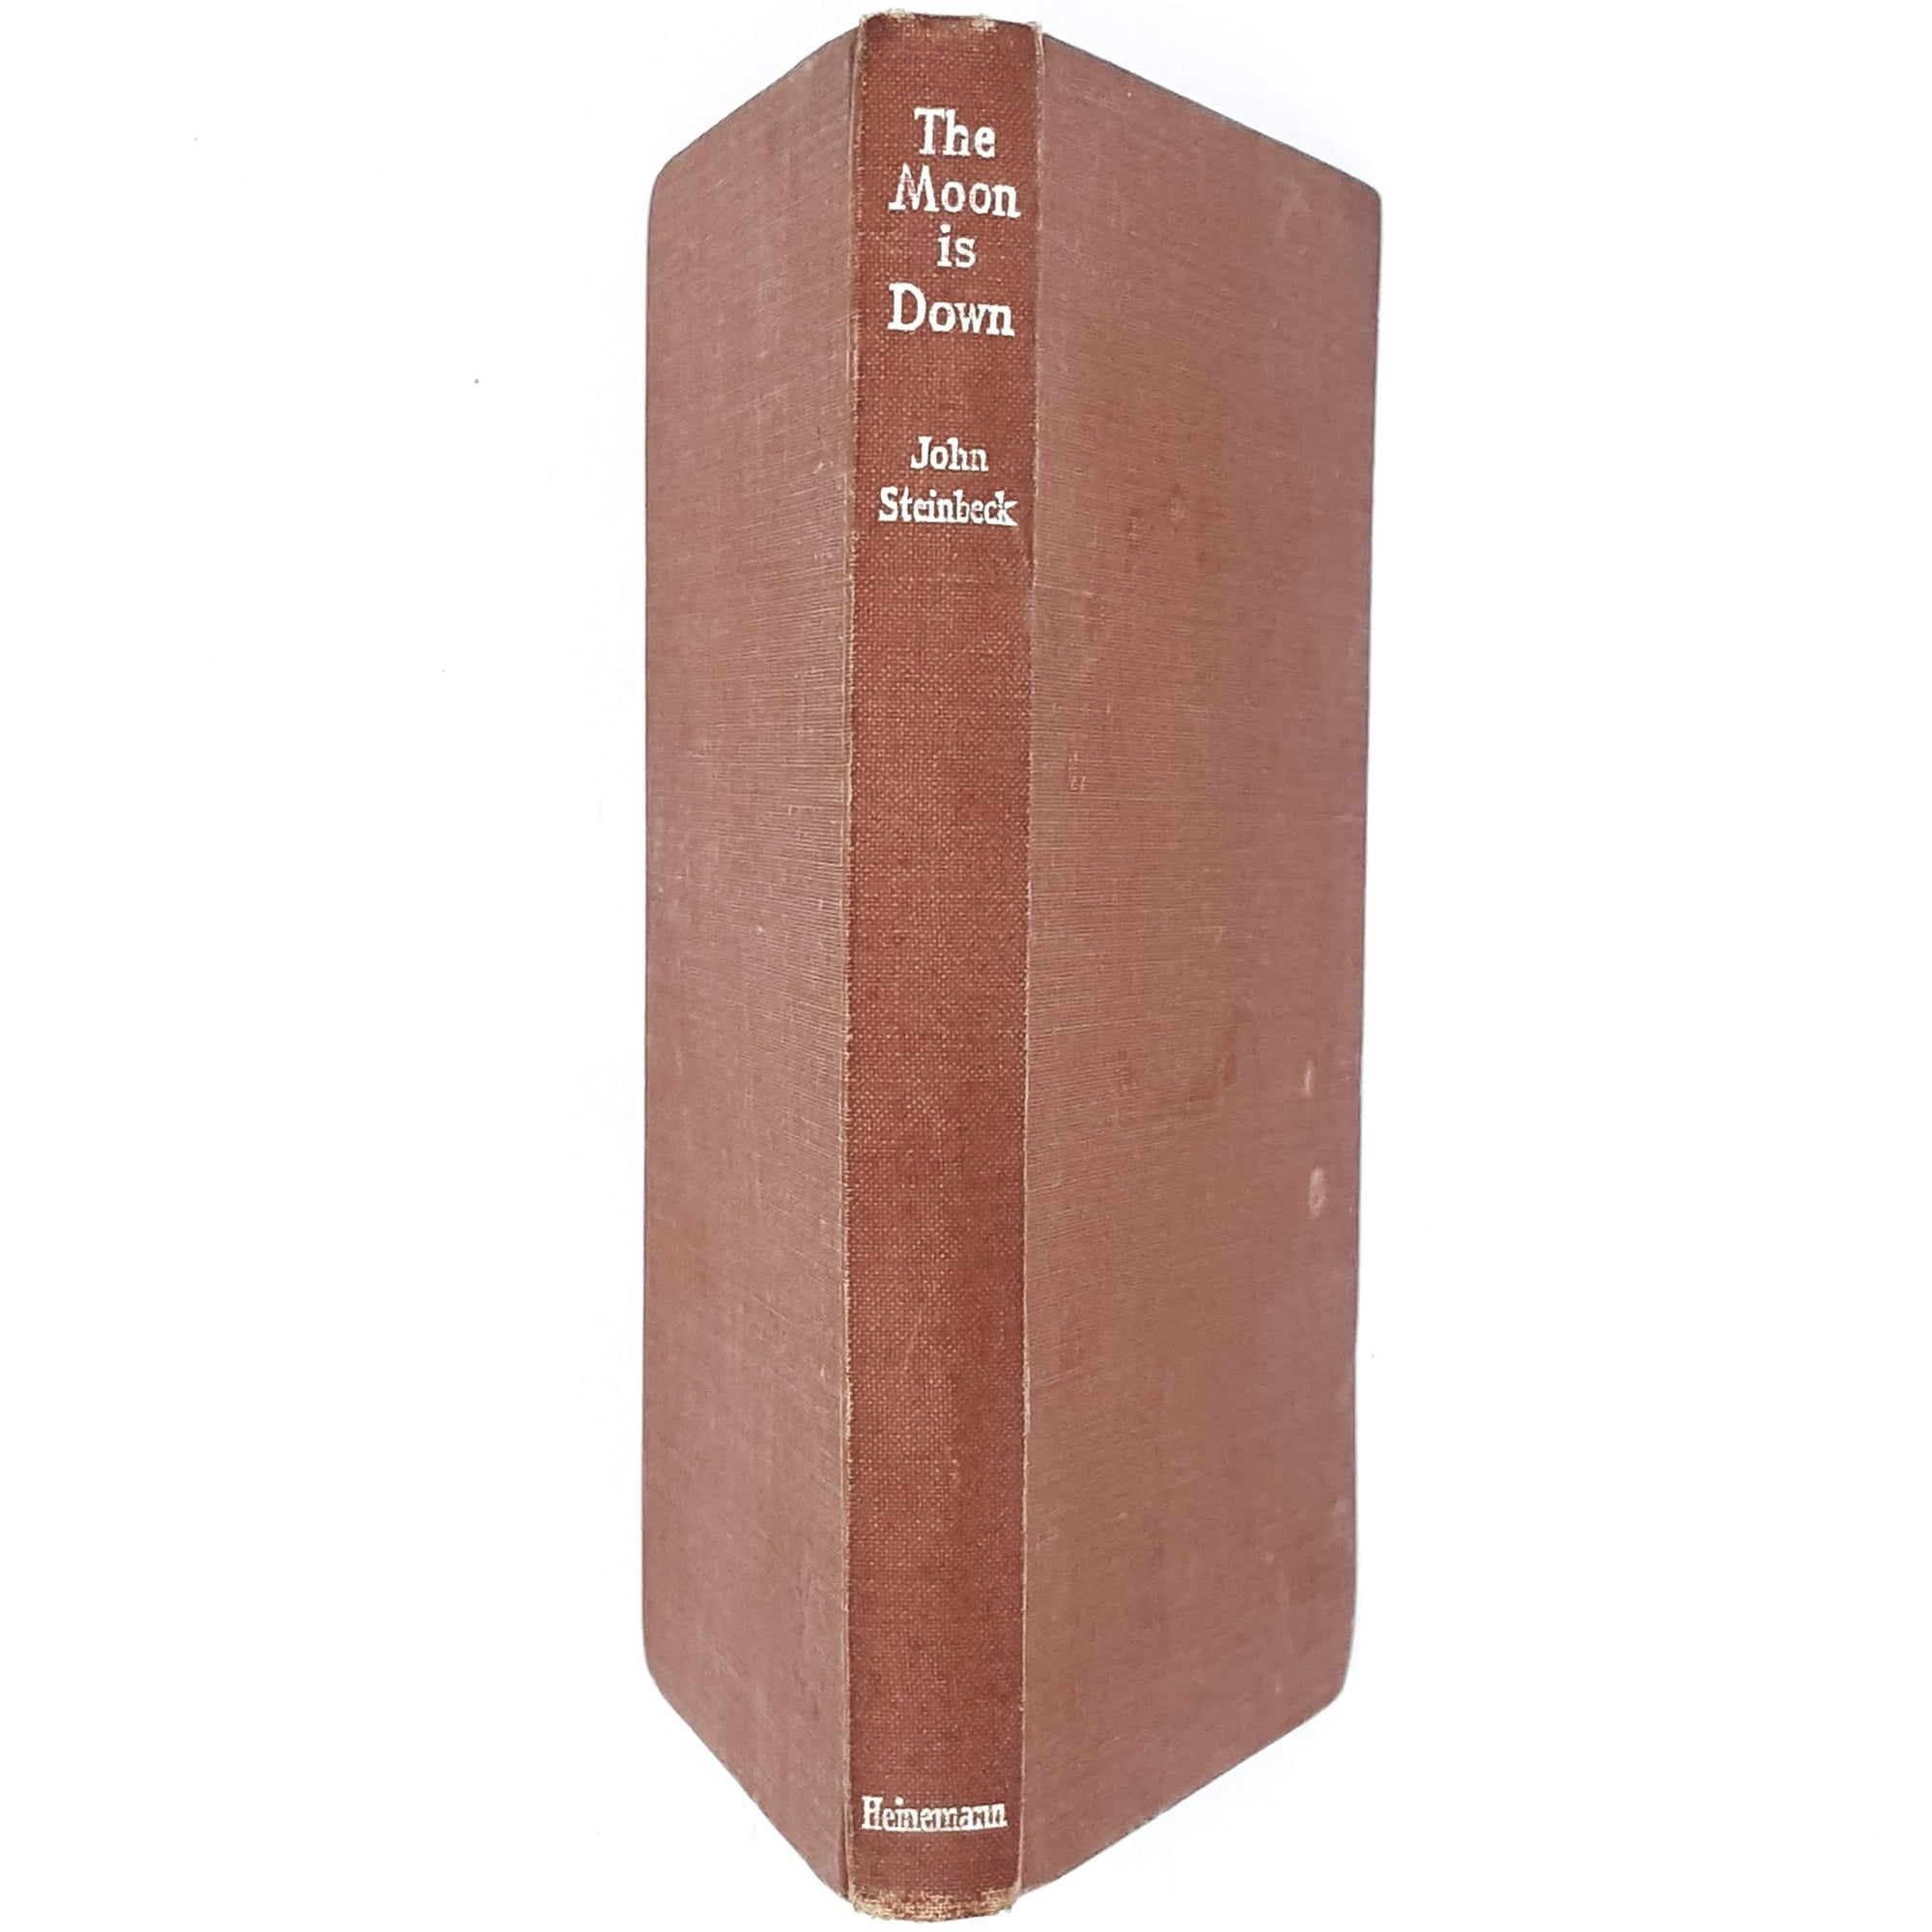 First Edition John Steinbeck's The Moon is Down 1942